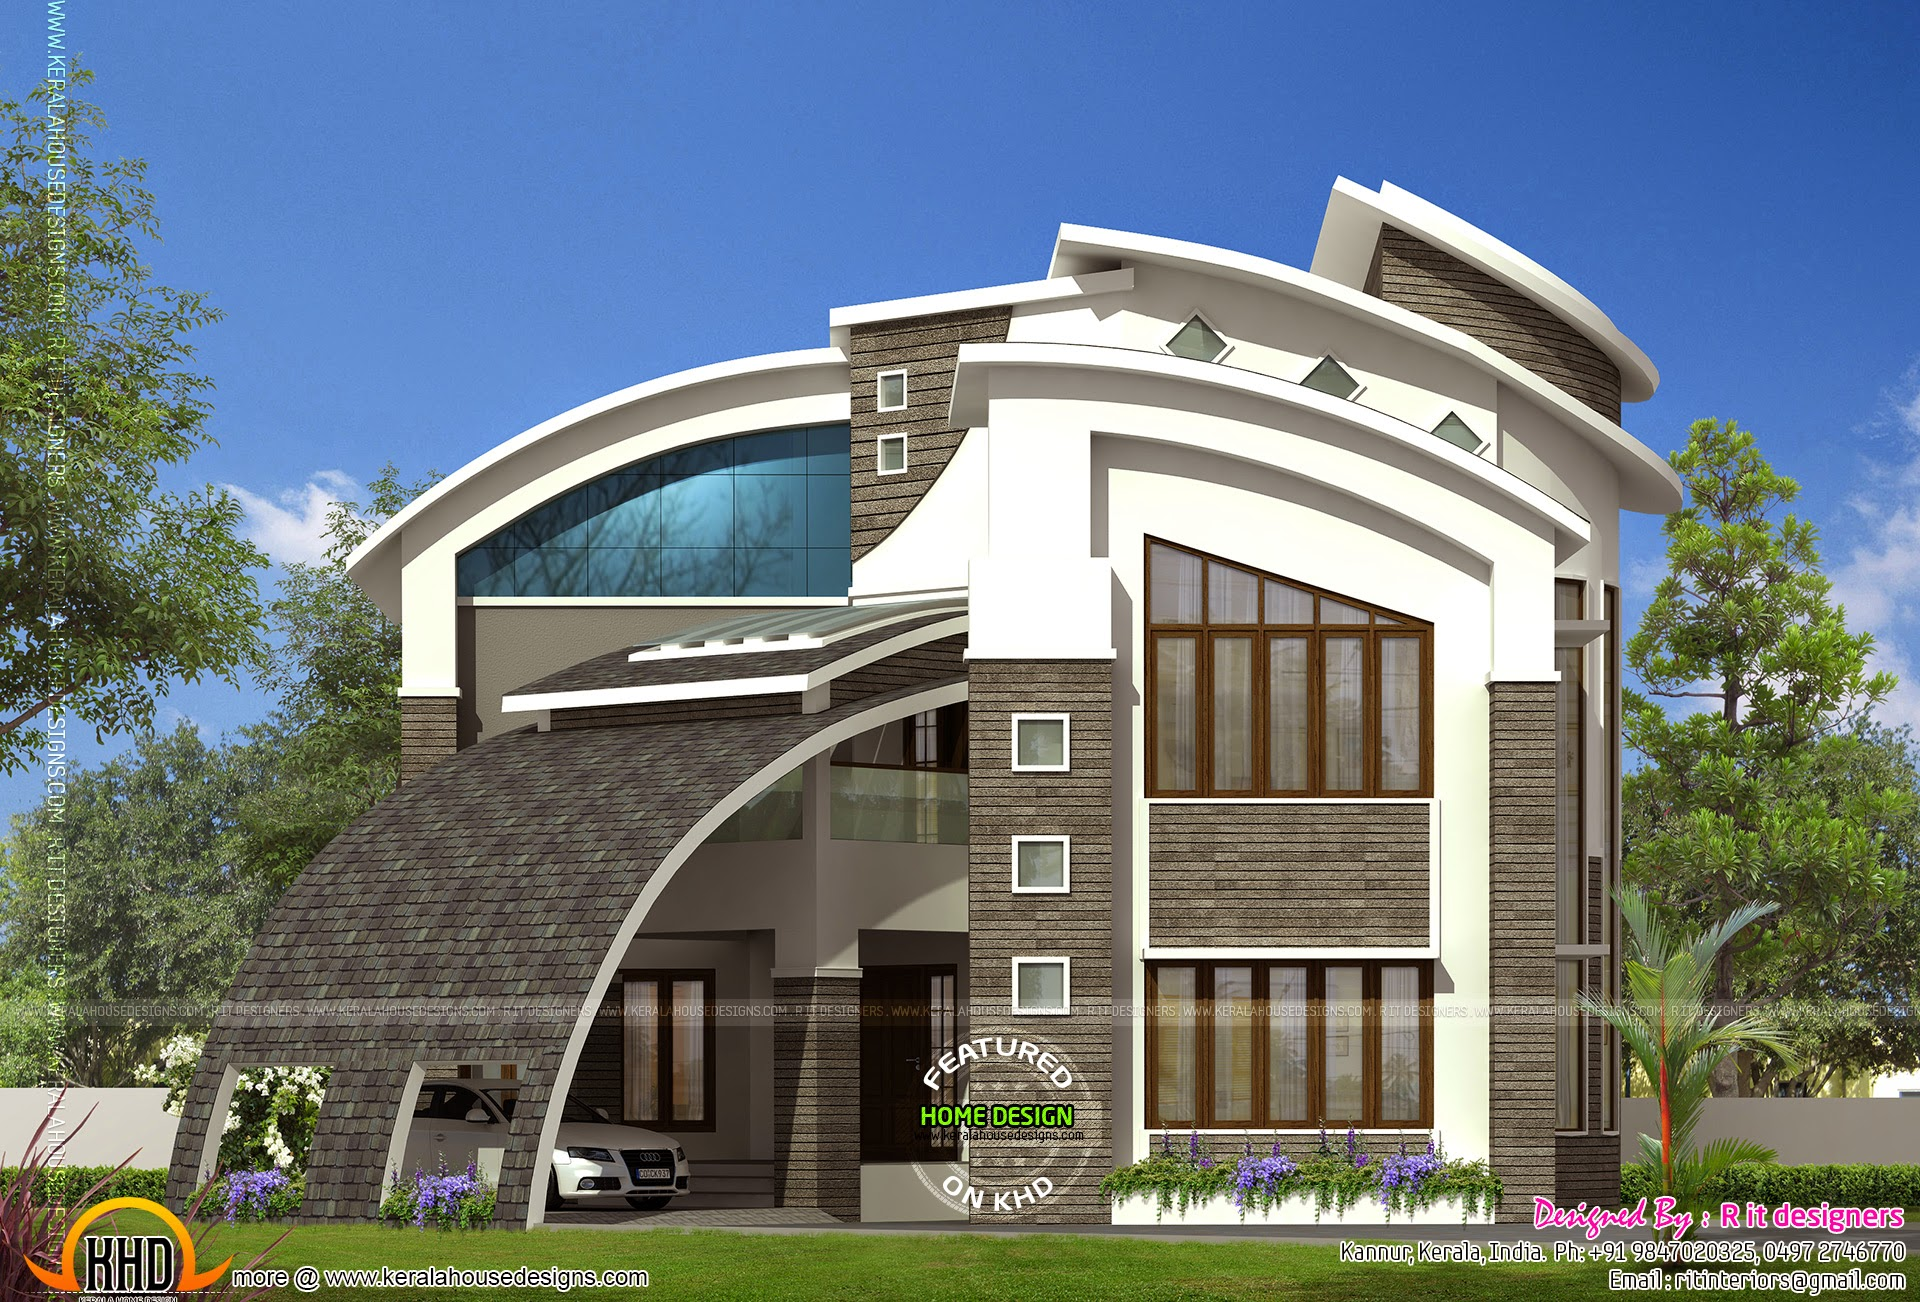 Most modern contemporary house design kerala home design for The most modern house